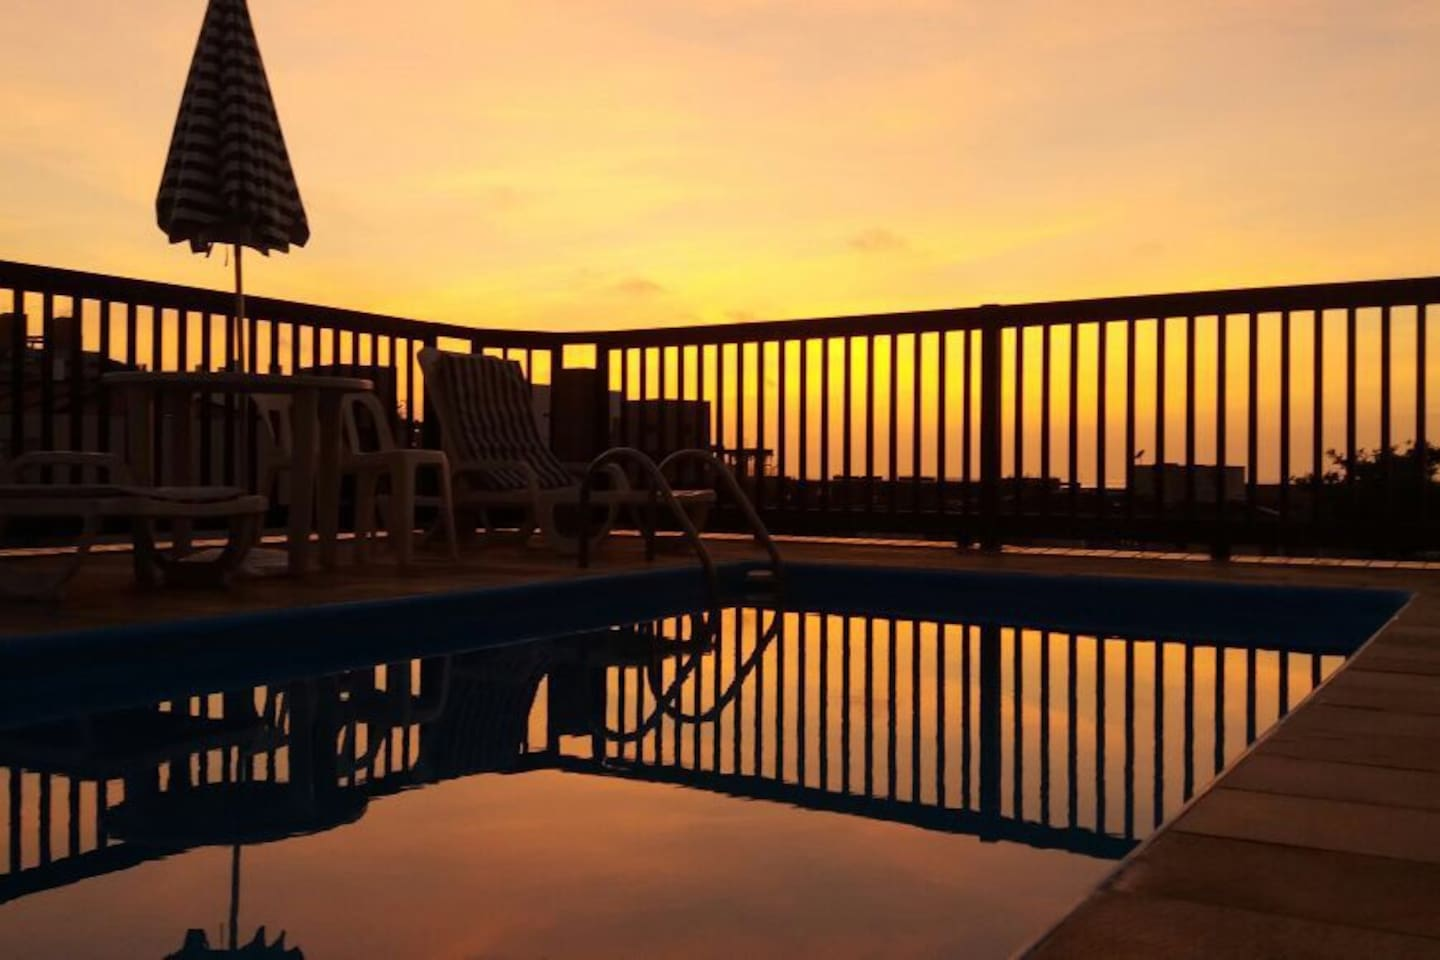 Vista da piscina por do sol as 6:30 manhã